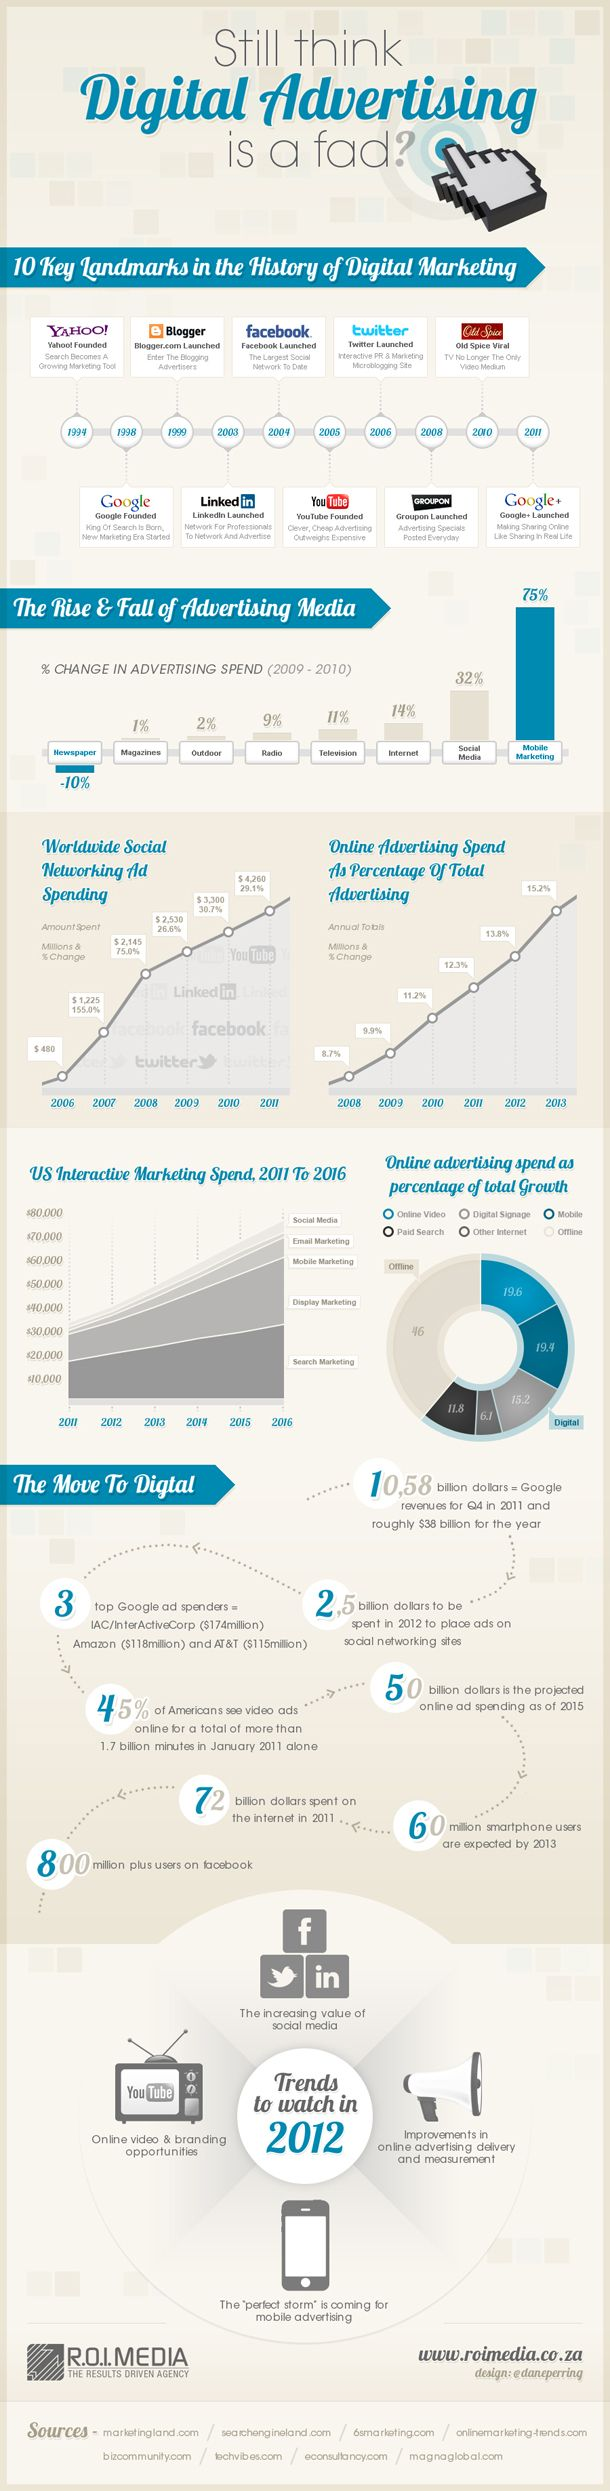 Social Media Infographic: Still think Digital Advertising is A Fad